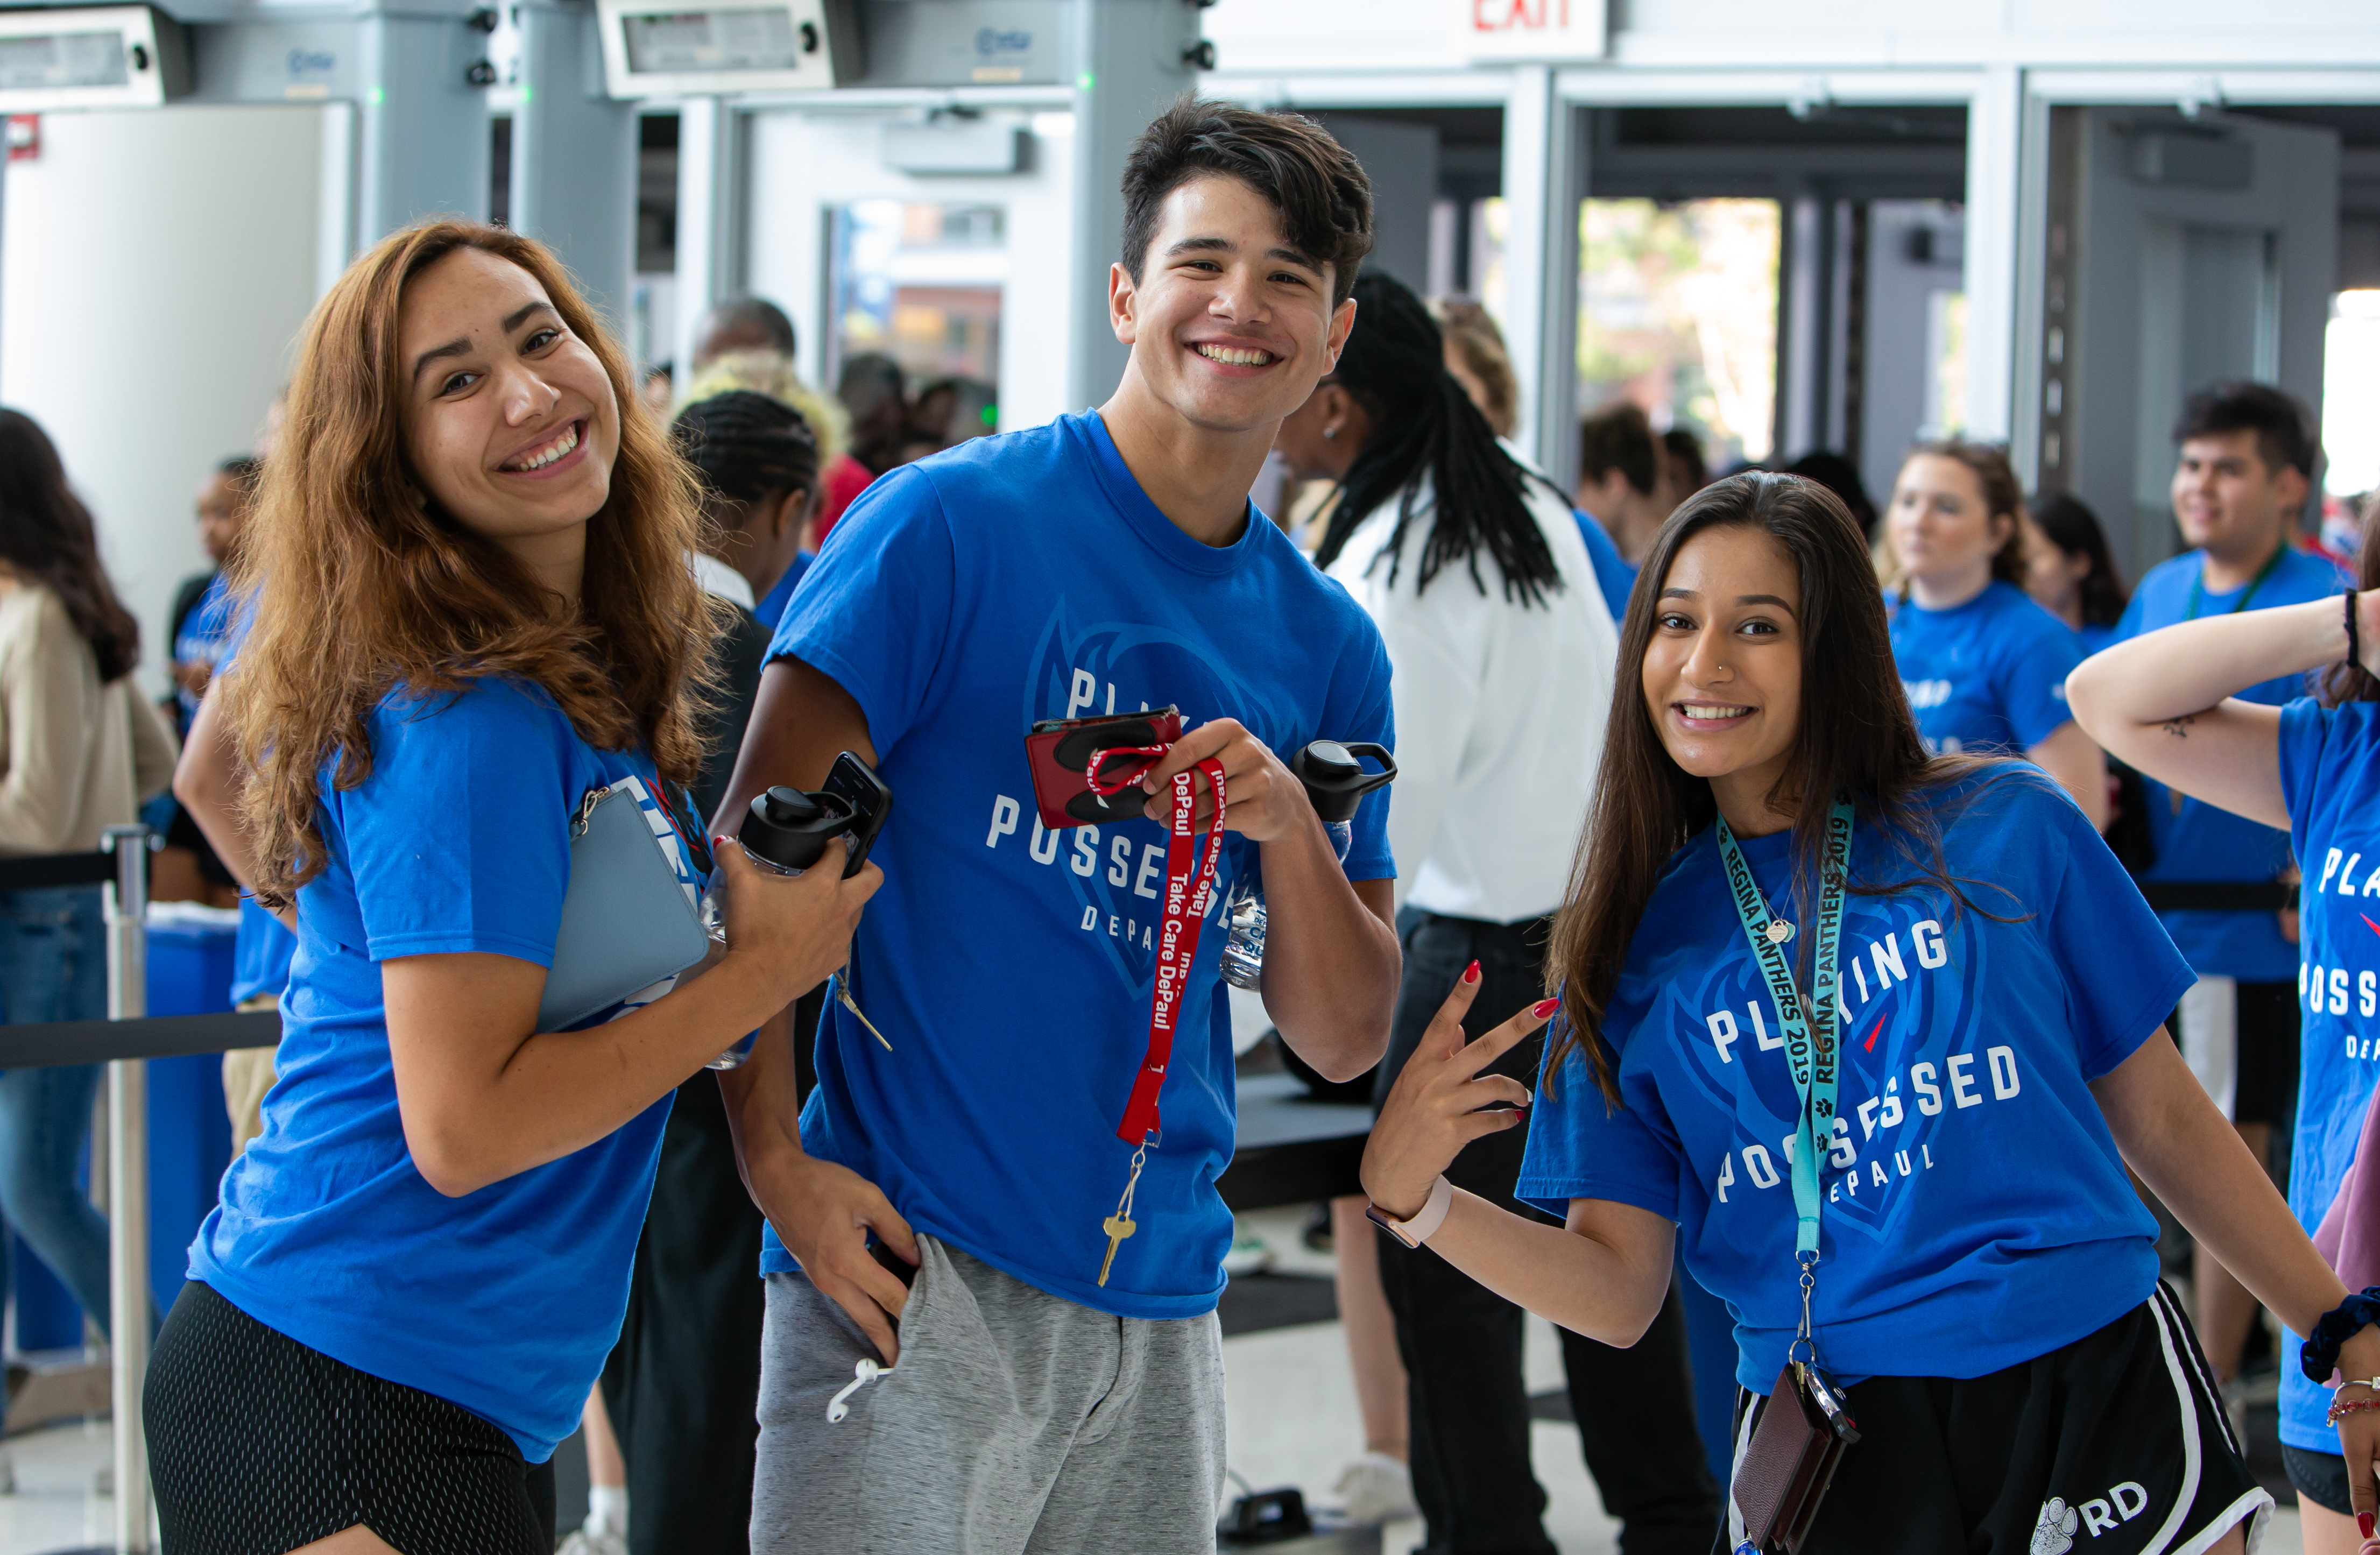 New DePaul students stop for a photo on their way in to Wintrust Arena for the first student convocation. (DePaul University/Randall Spriggs)